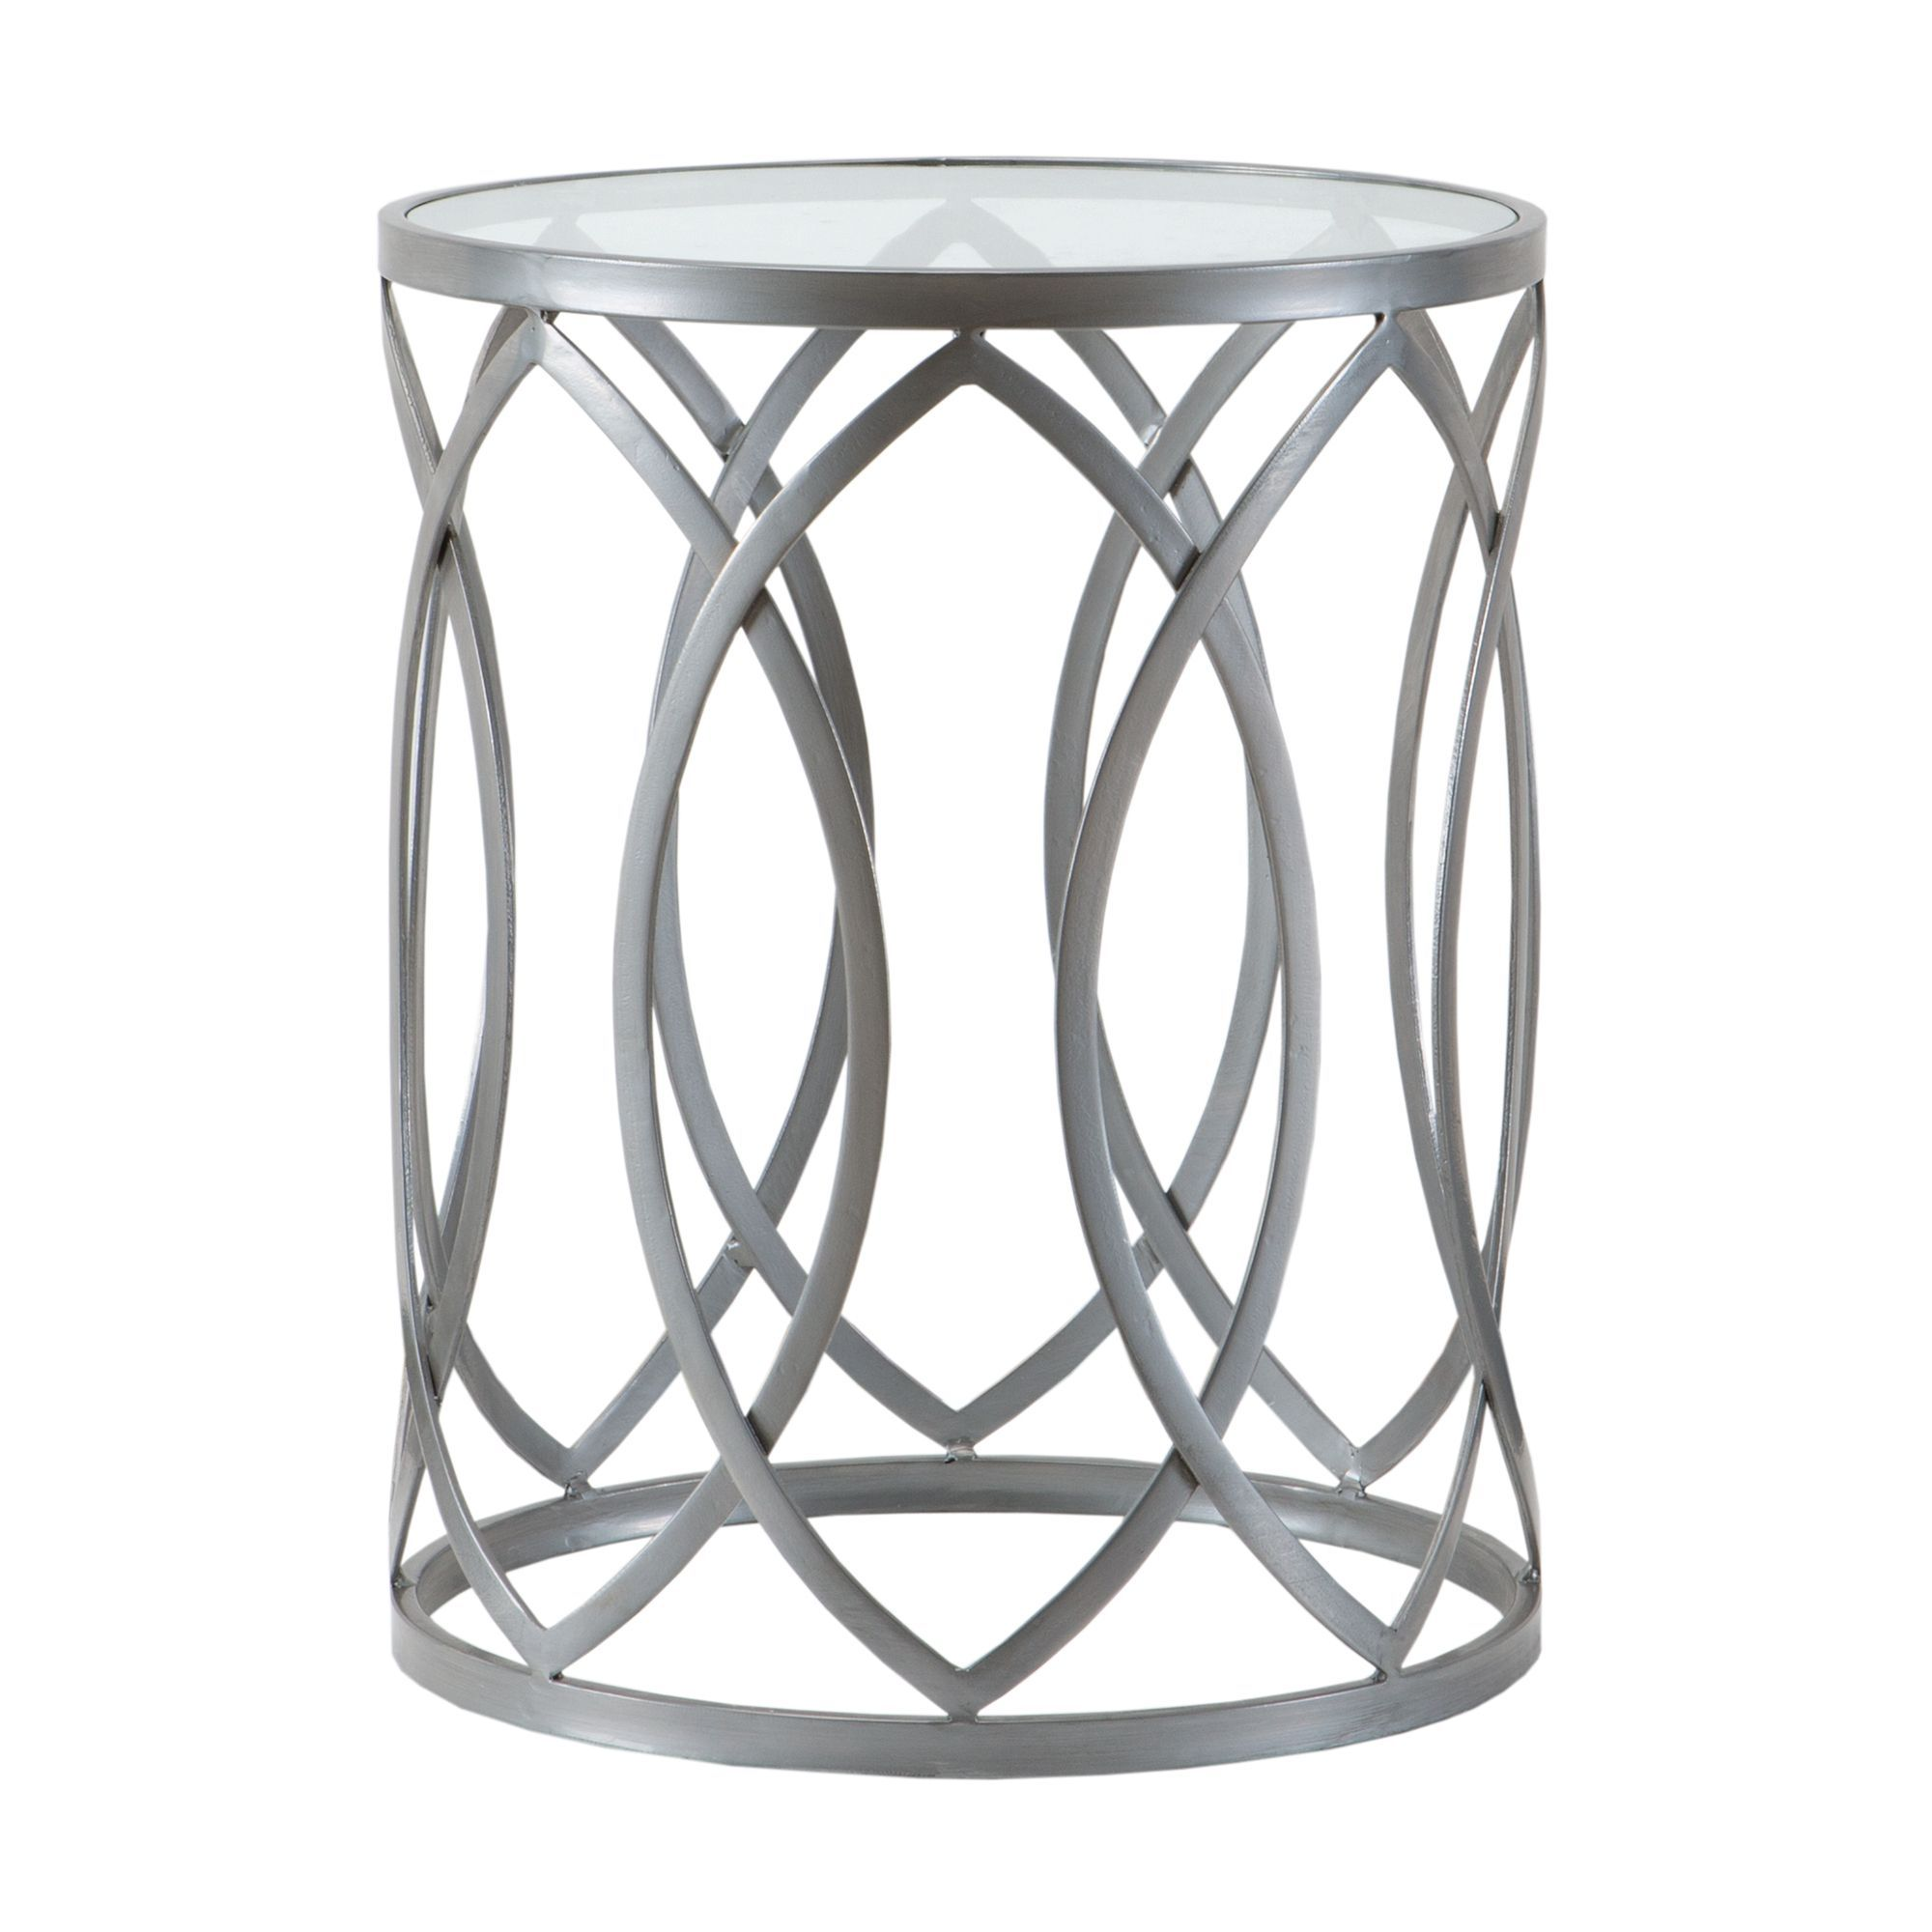 madison park coen metal eyelet accent drum table grey new living silver this with glass top adds just the right amount transitional appeal its geometric styling small side coffee